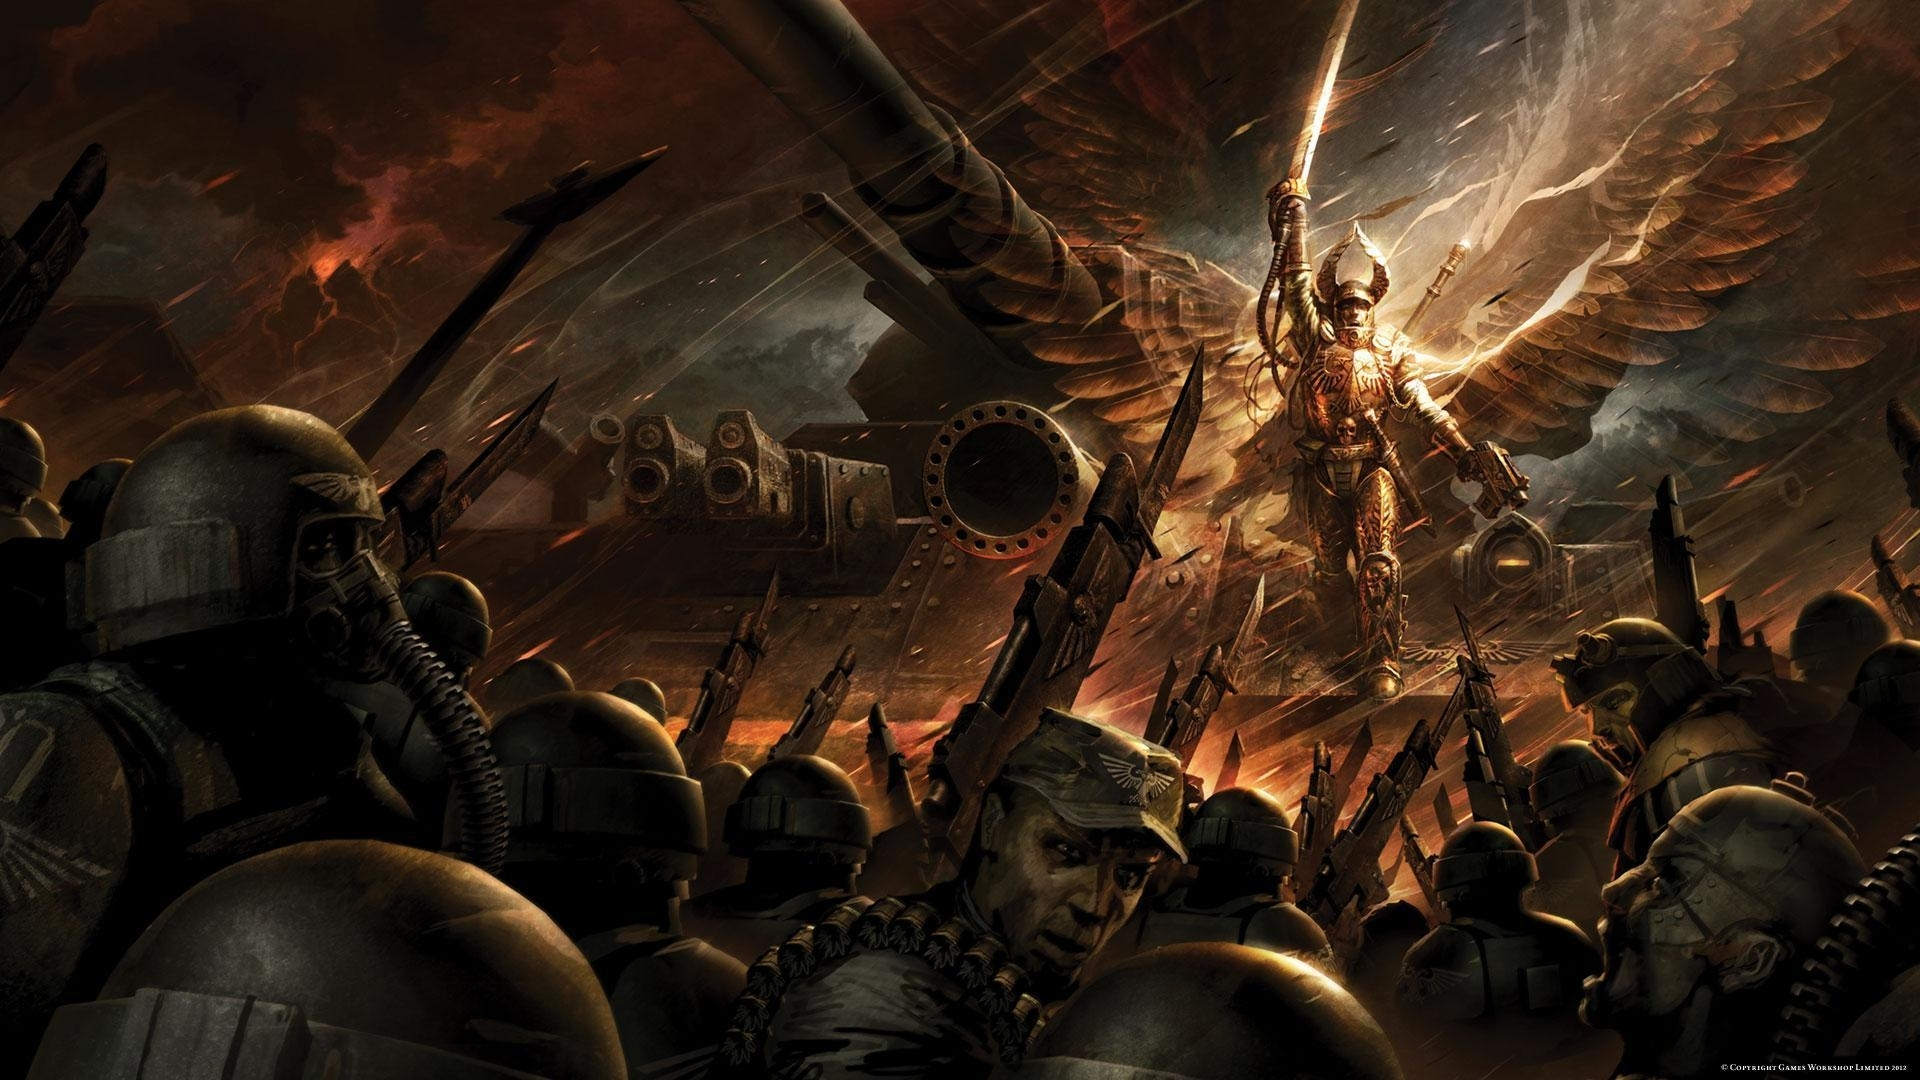 10 Best Warhammer 40K Wallpapers 1920X1080 FULL HD 1080p For PC Background